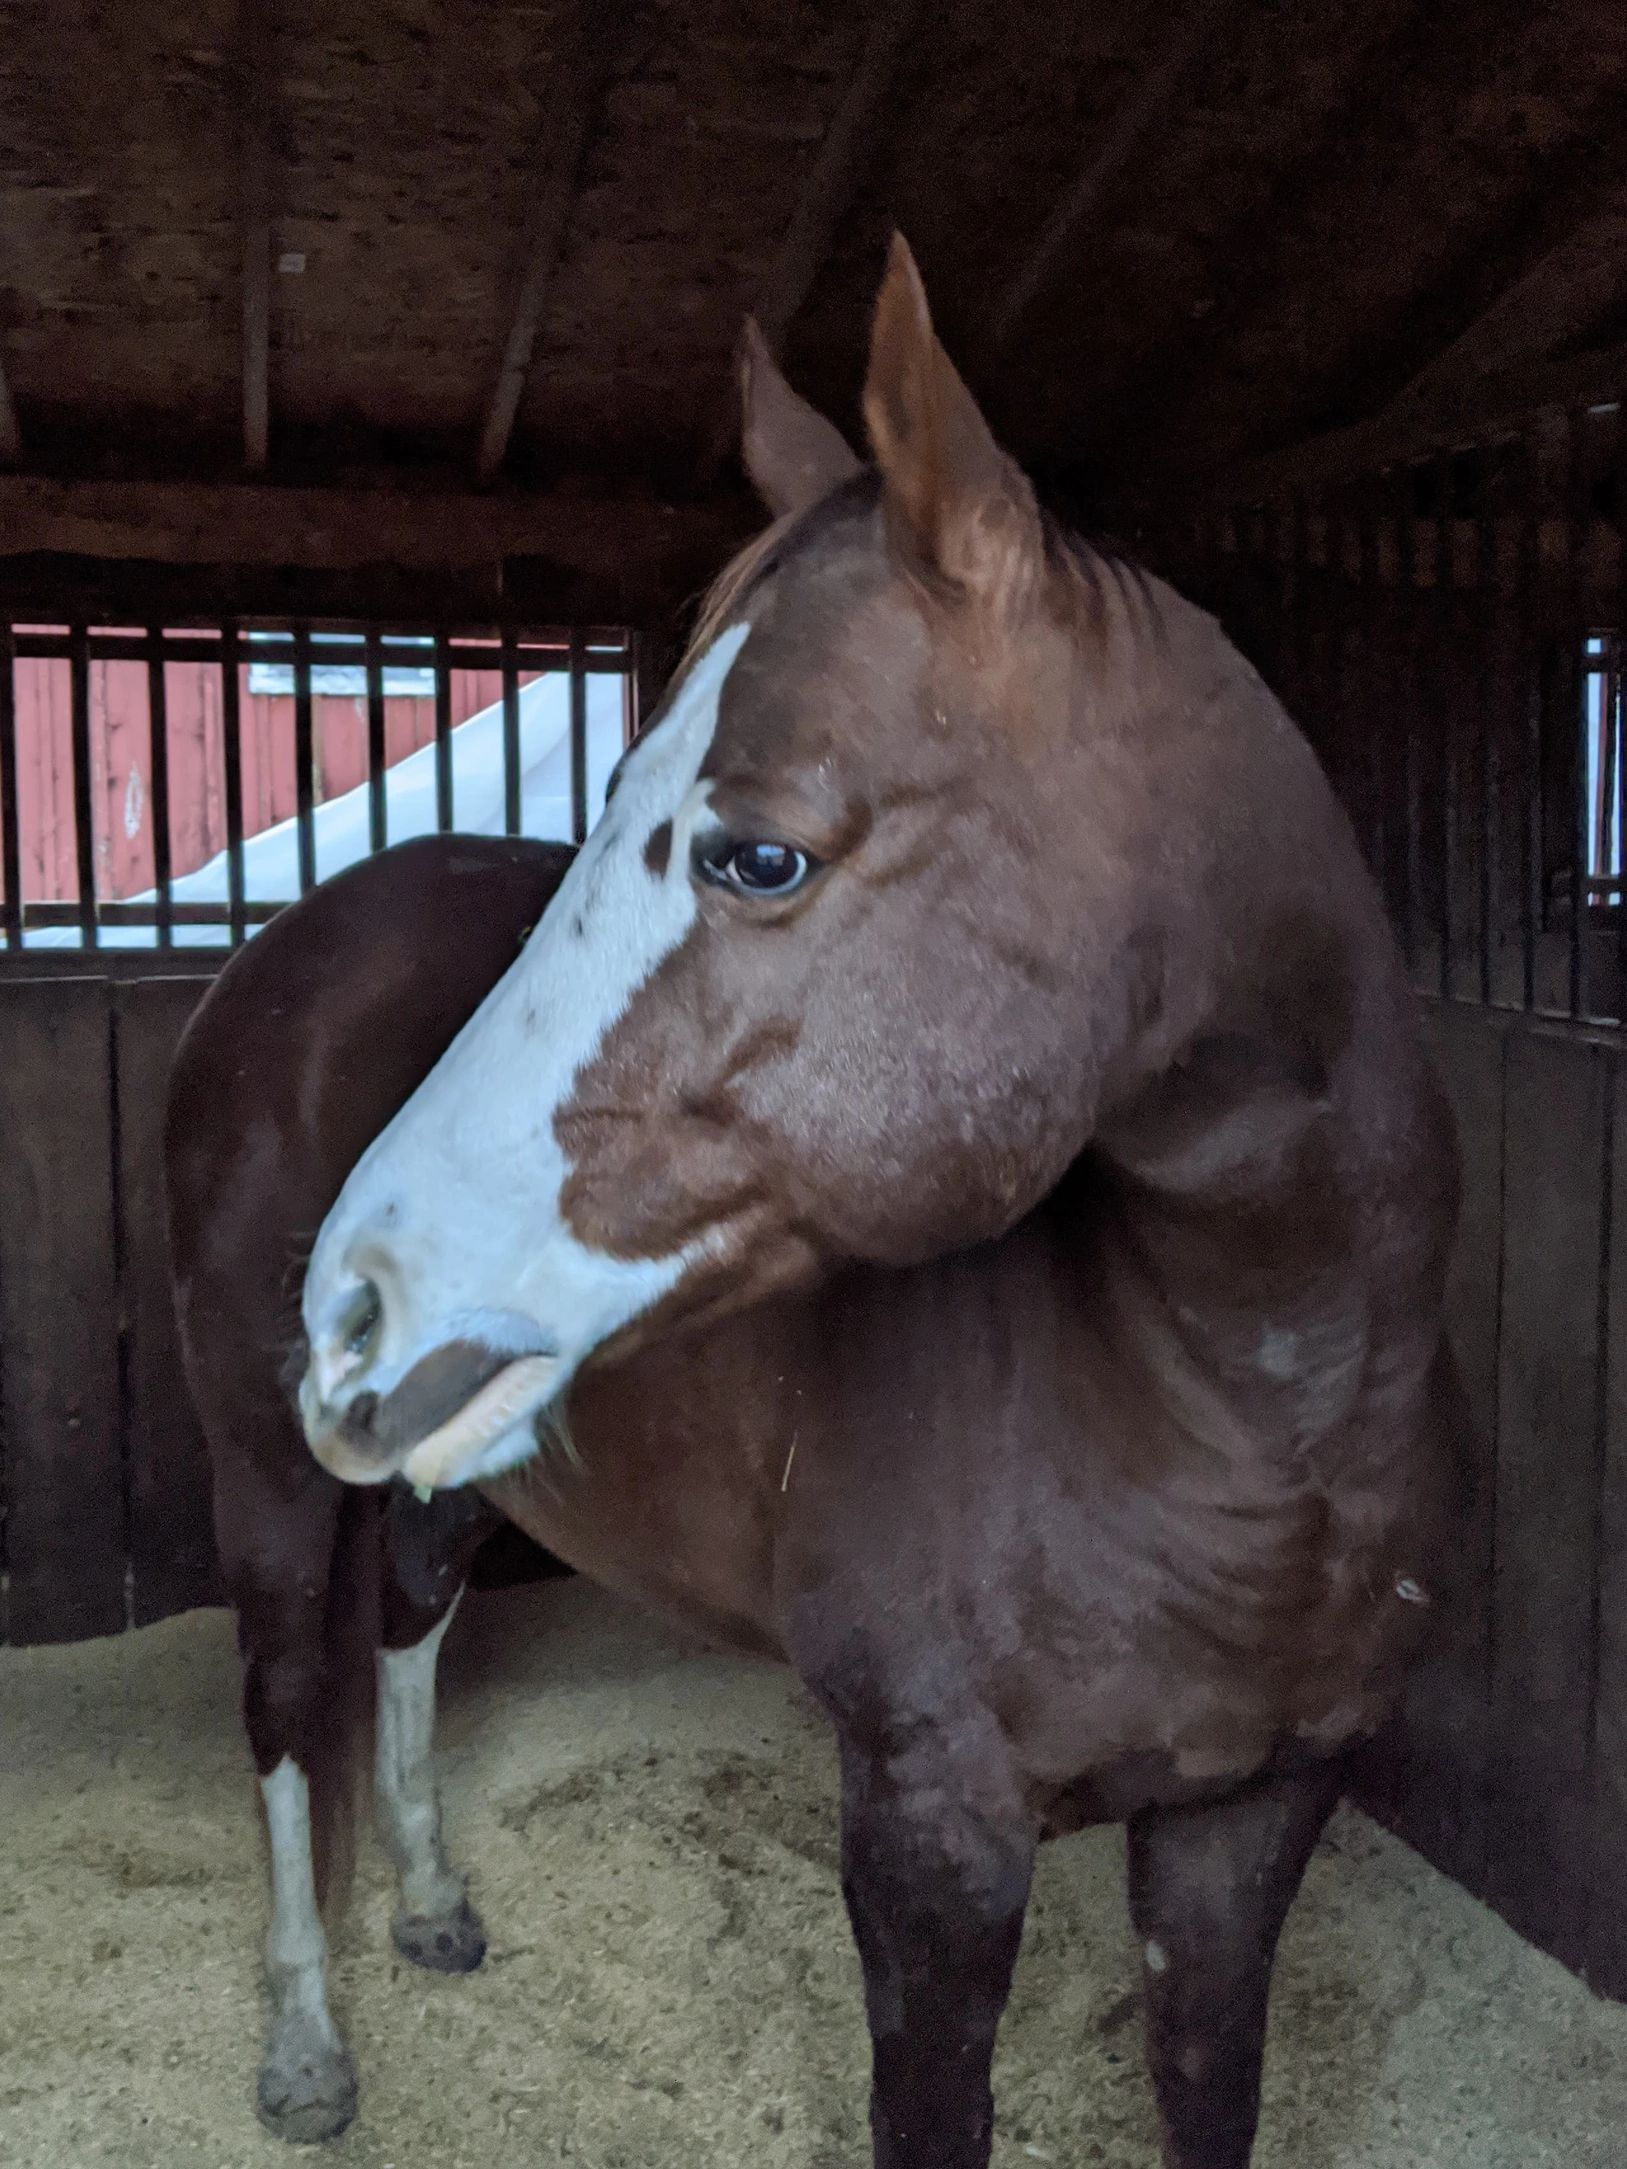 chestnut mare with large white blaze standing in stall